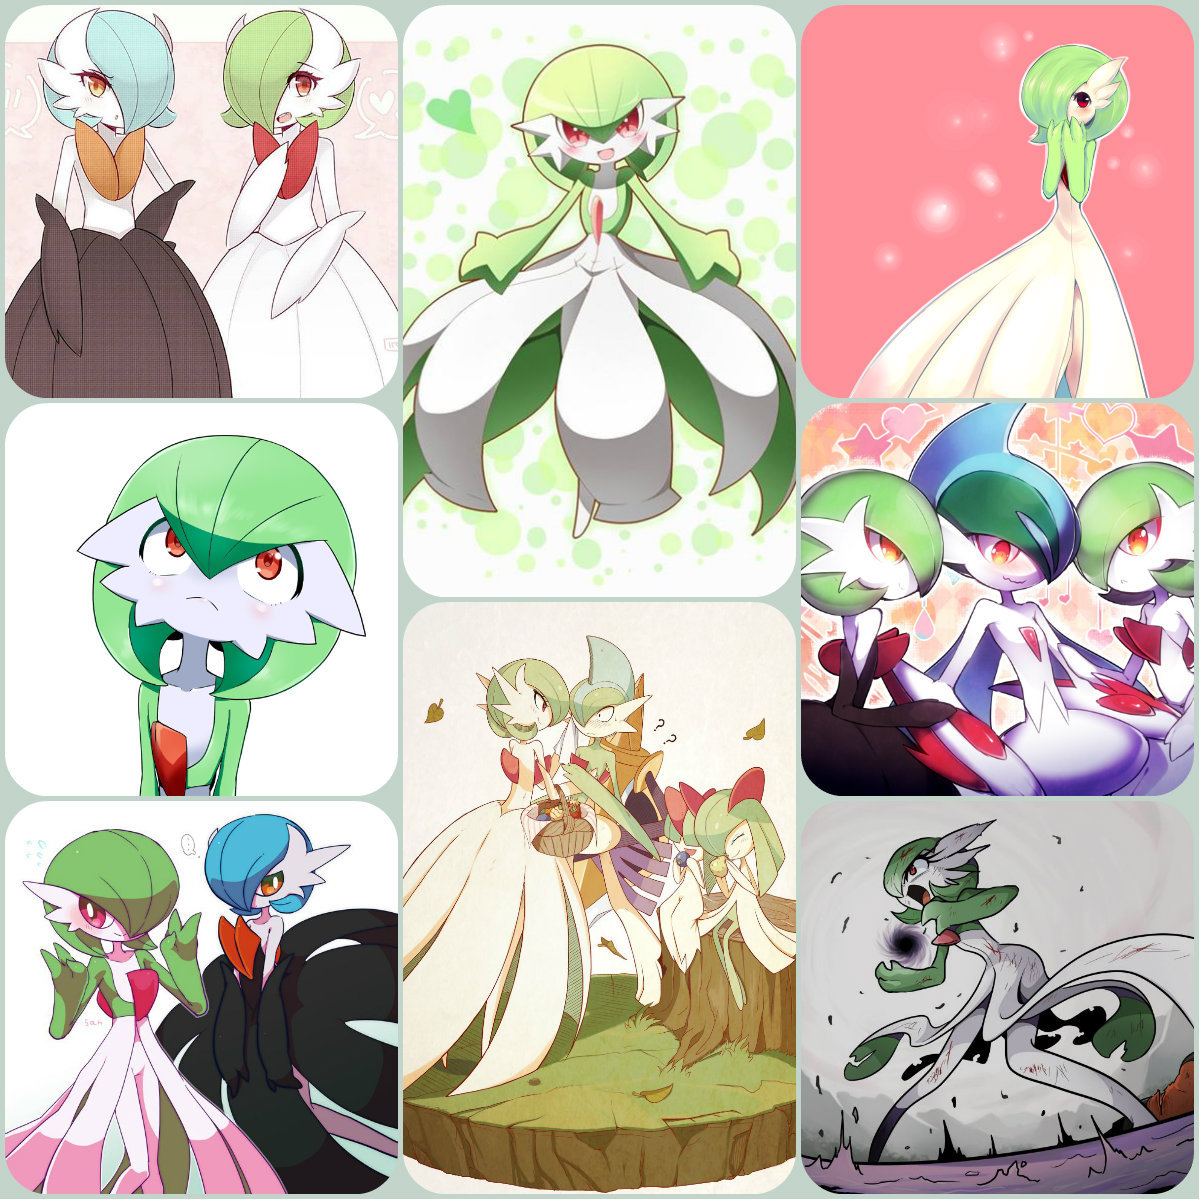 I made a little Gardevoir thingy. I'm not sure what to do with it though. I didn't draw any of the art,not mine. shrug #gardevoir#pokemon#random#ralts line#psychic#fairy